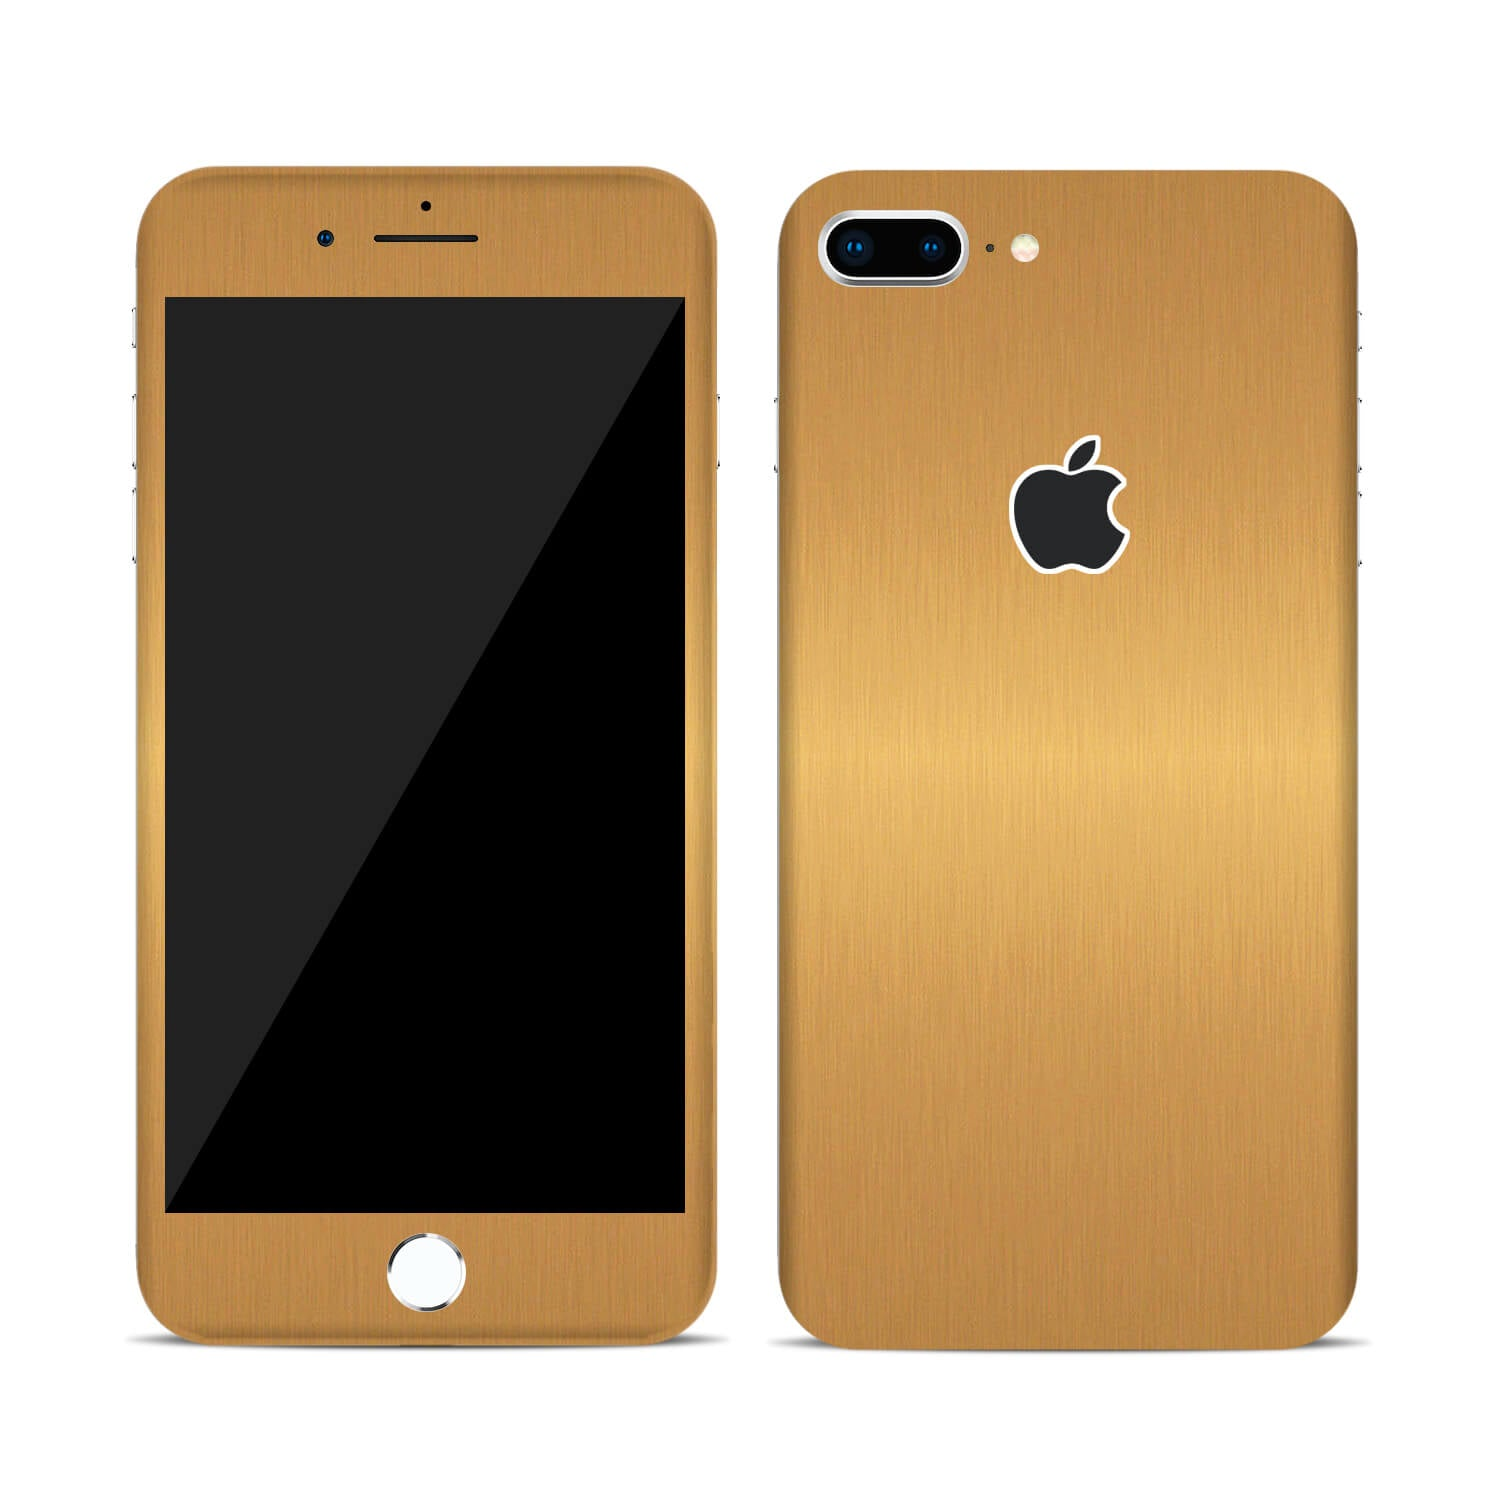 Iphone S Gold Screen Protector